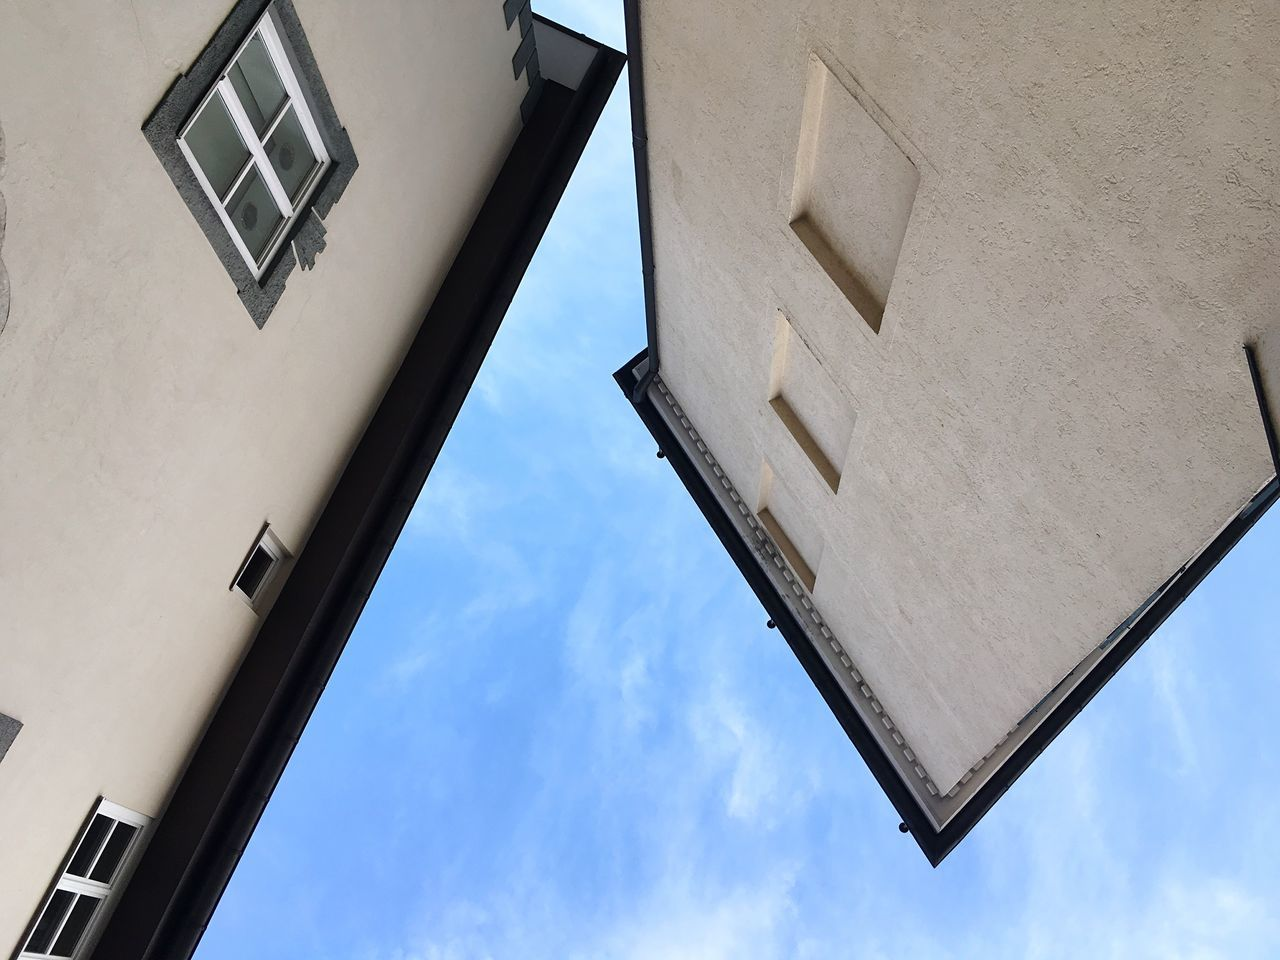 Bad Tölz Bavarian Architecture Architecture_collection Architectural Detail Built Structure Low Angle View Building Building And Sky Architecture And Sky Bavaria Modern Architecture Geometric Shapes Geometry